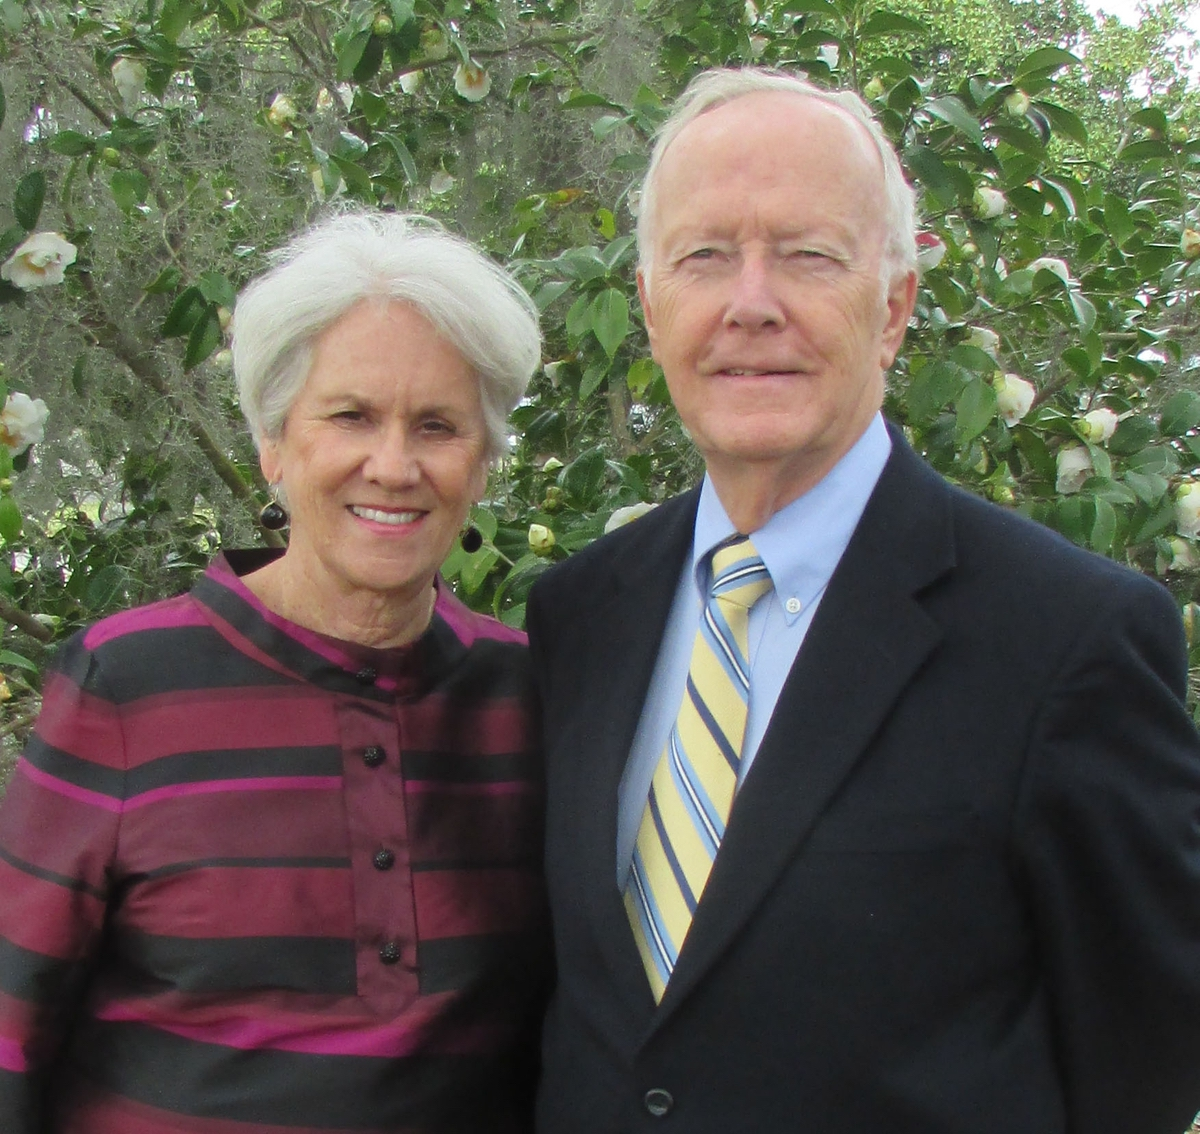 Bill and Josie Paddock are serving as the honorary chairs for the fundraiser.